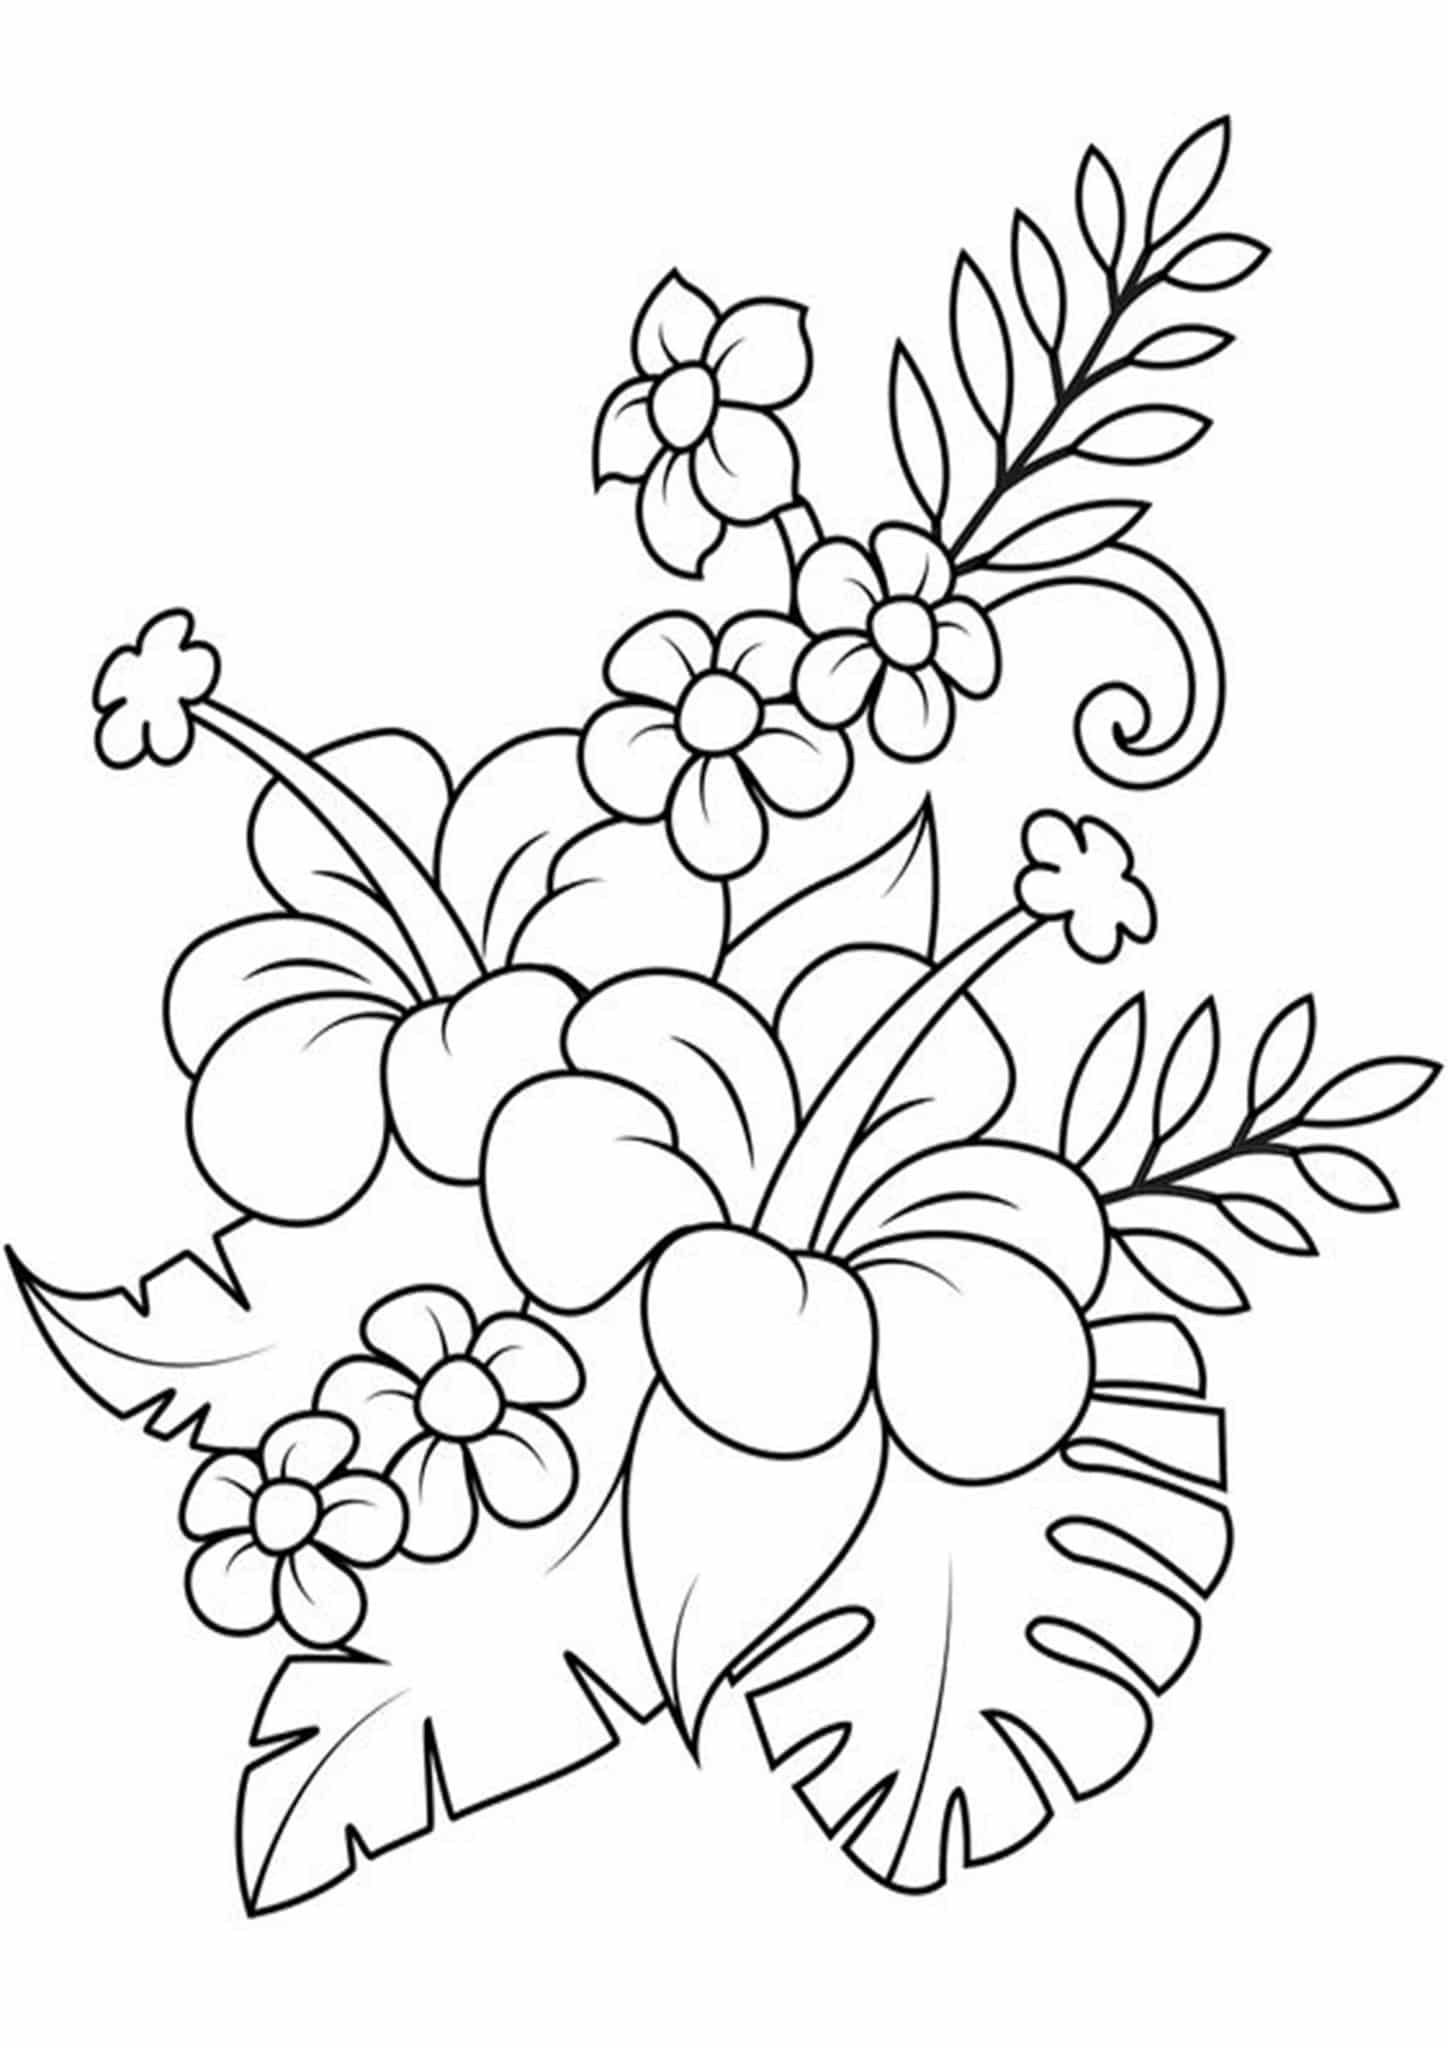 flower printable coloring pages dahlia flower coloring pages download and print dahlia coloring printable pages flower